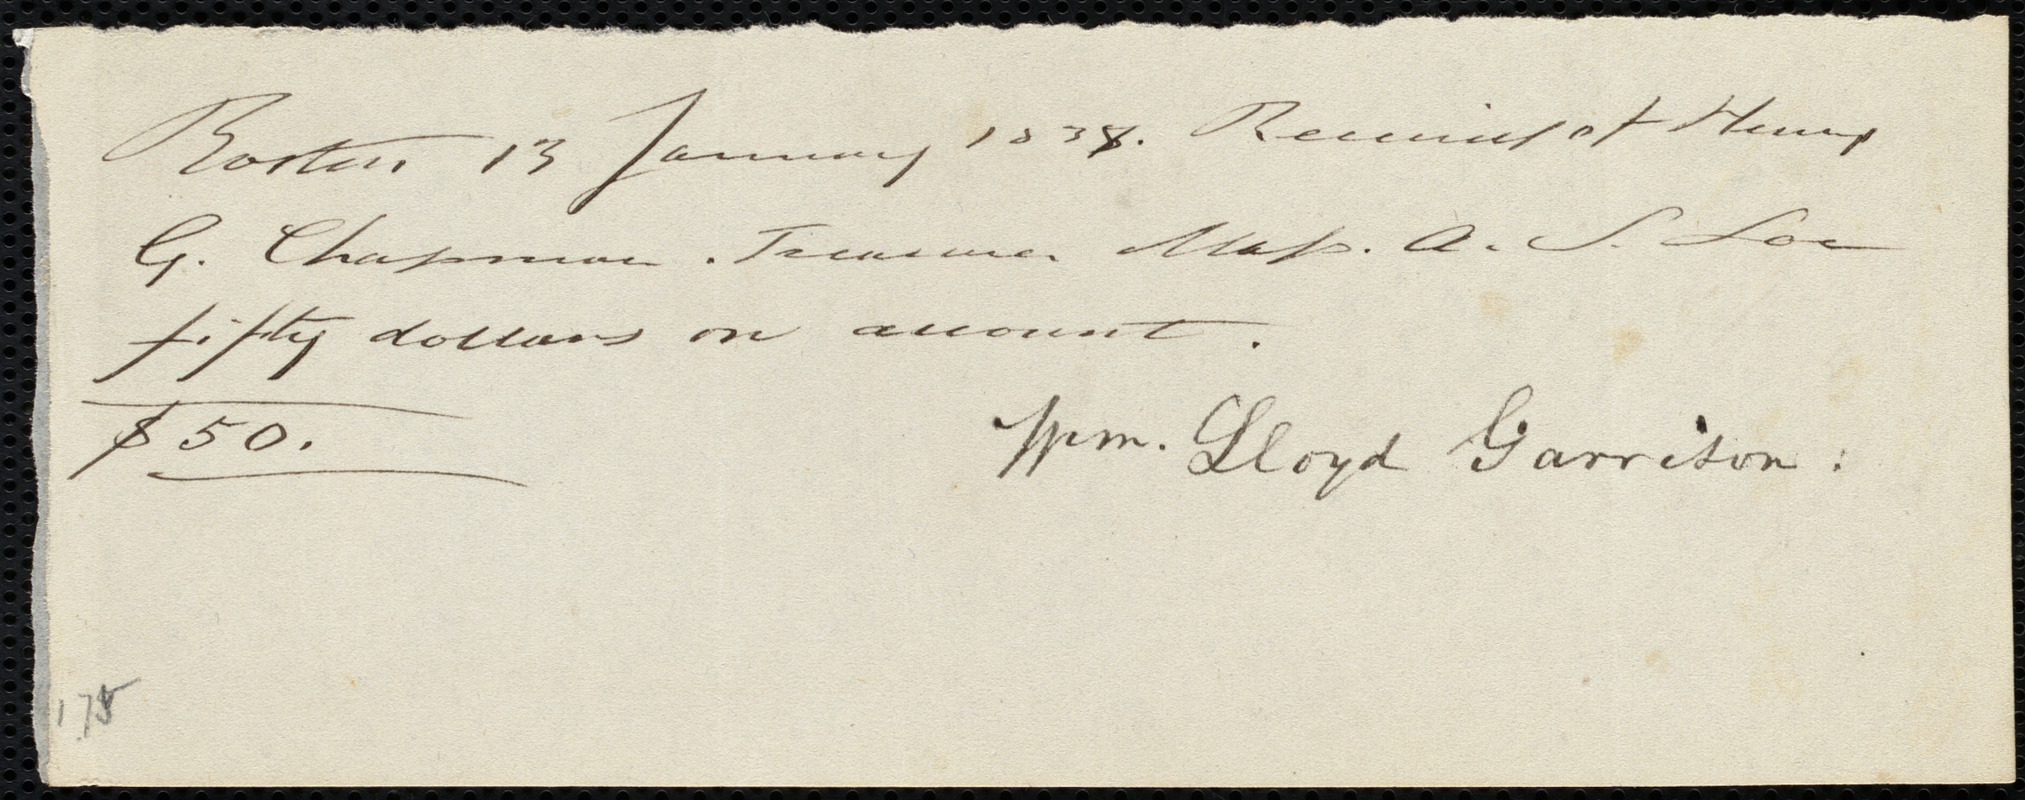 Receipt from William Lloyd Garrison, Boston, [Mass.], to Henry Grafton Chapman, 13 January 1838